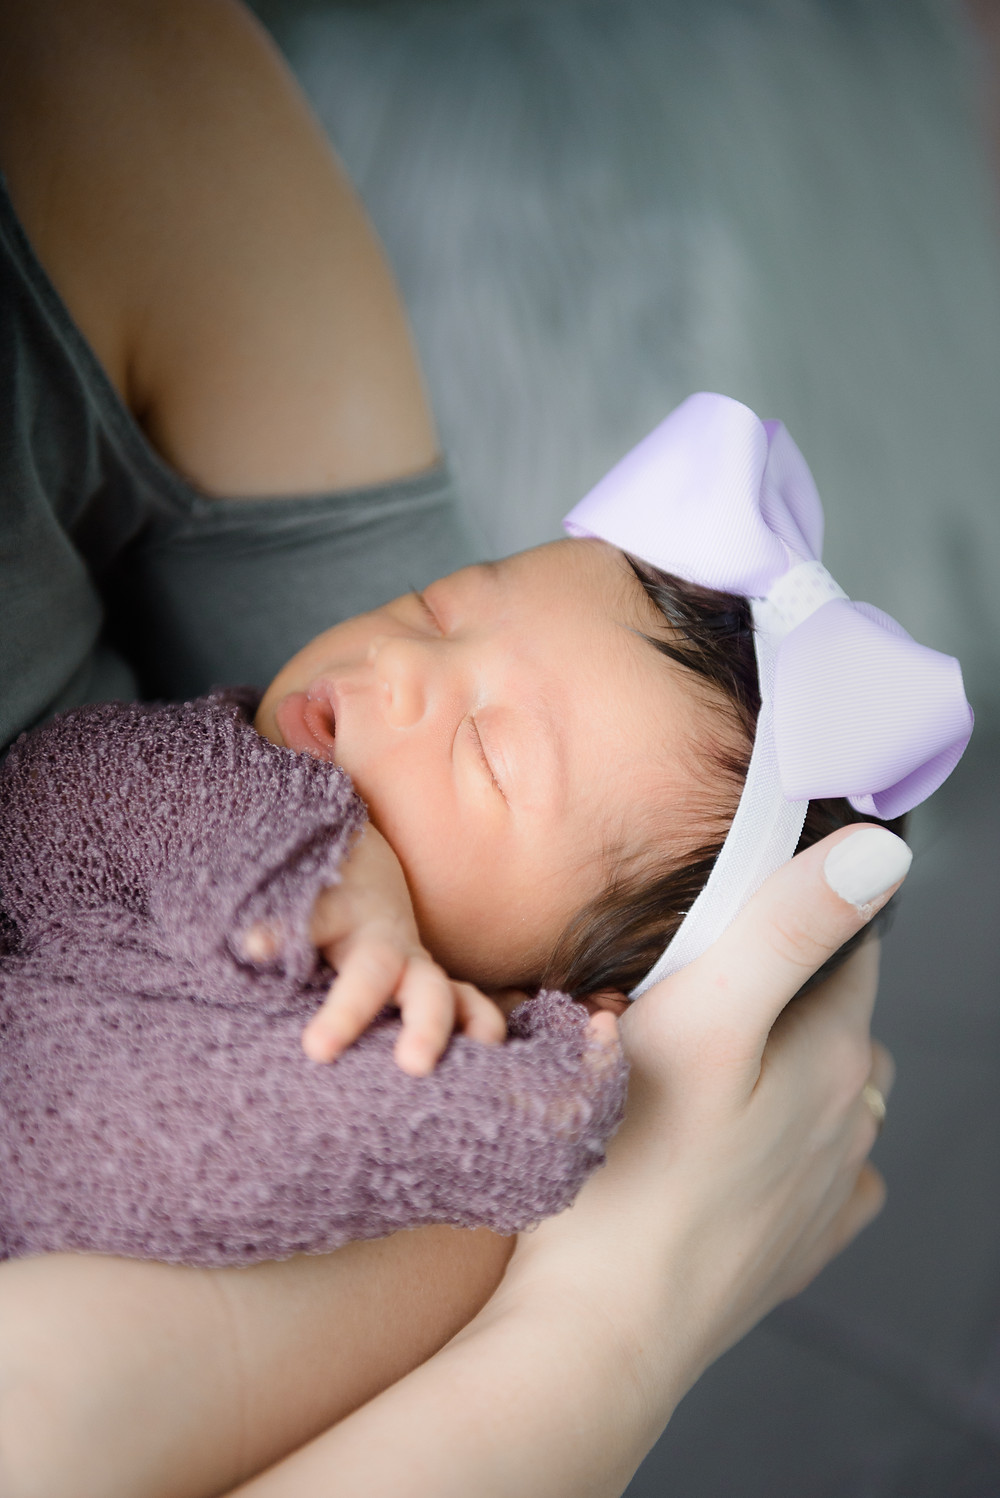 New mom holding her newborn baby girl. Newborn in a purple wrap with a purple bow on her head, sleeping.